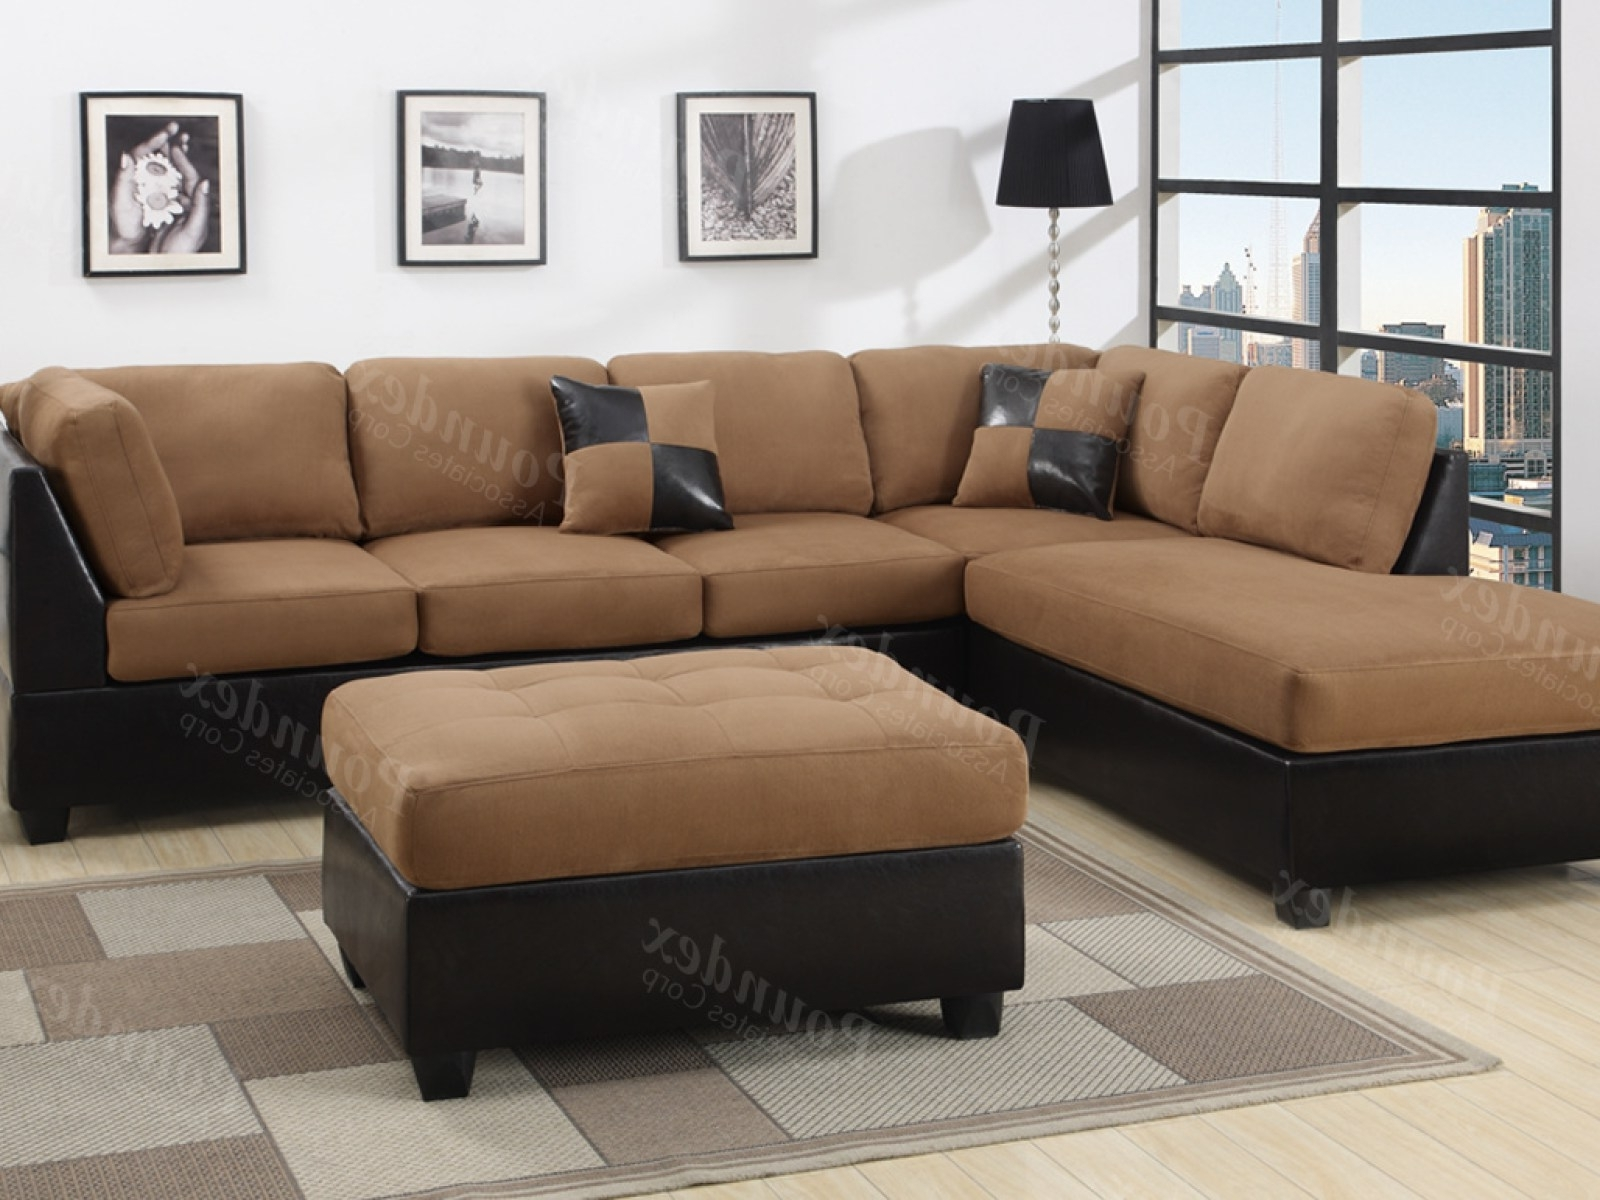 Popular Sectional Sofas That Can Be Rearranged Pertaining To ▻ Sofa : 15 3058702 Poster P 1 A Modular Sofa That Can Rearrange (View 9 of 20)